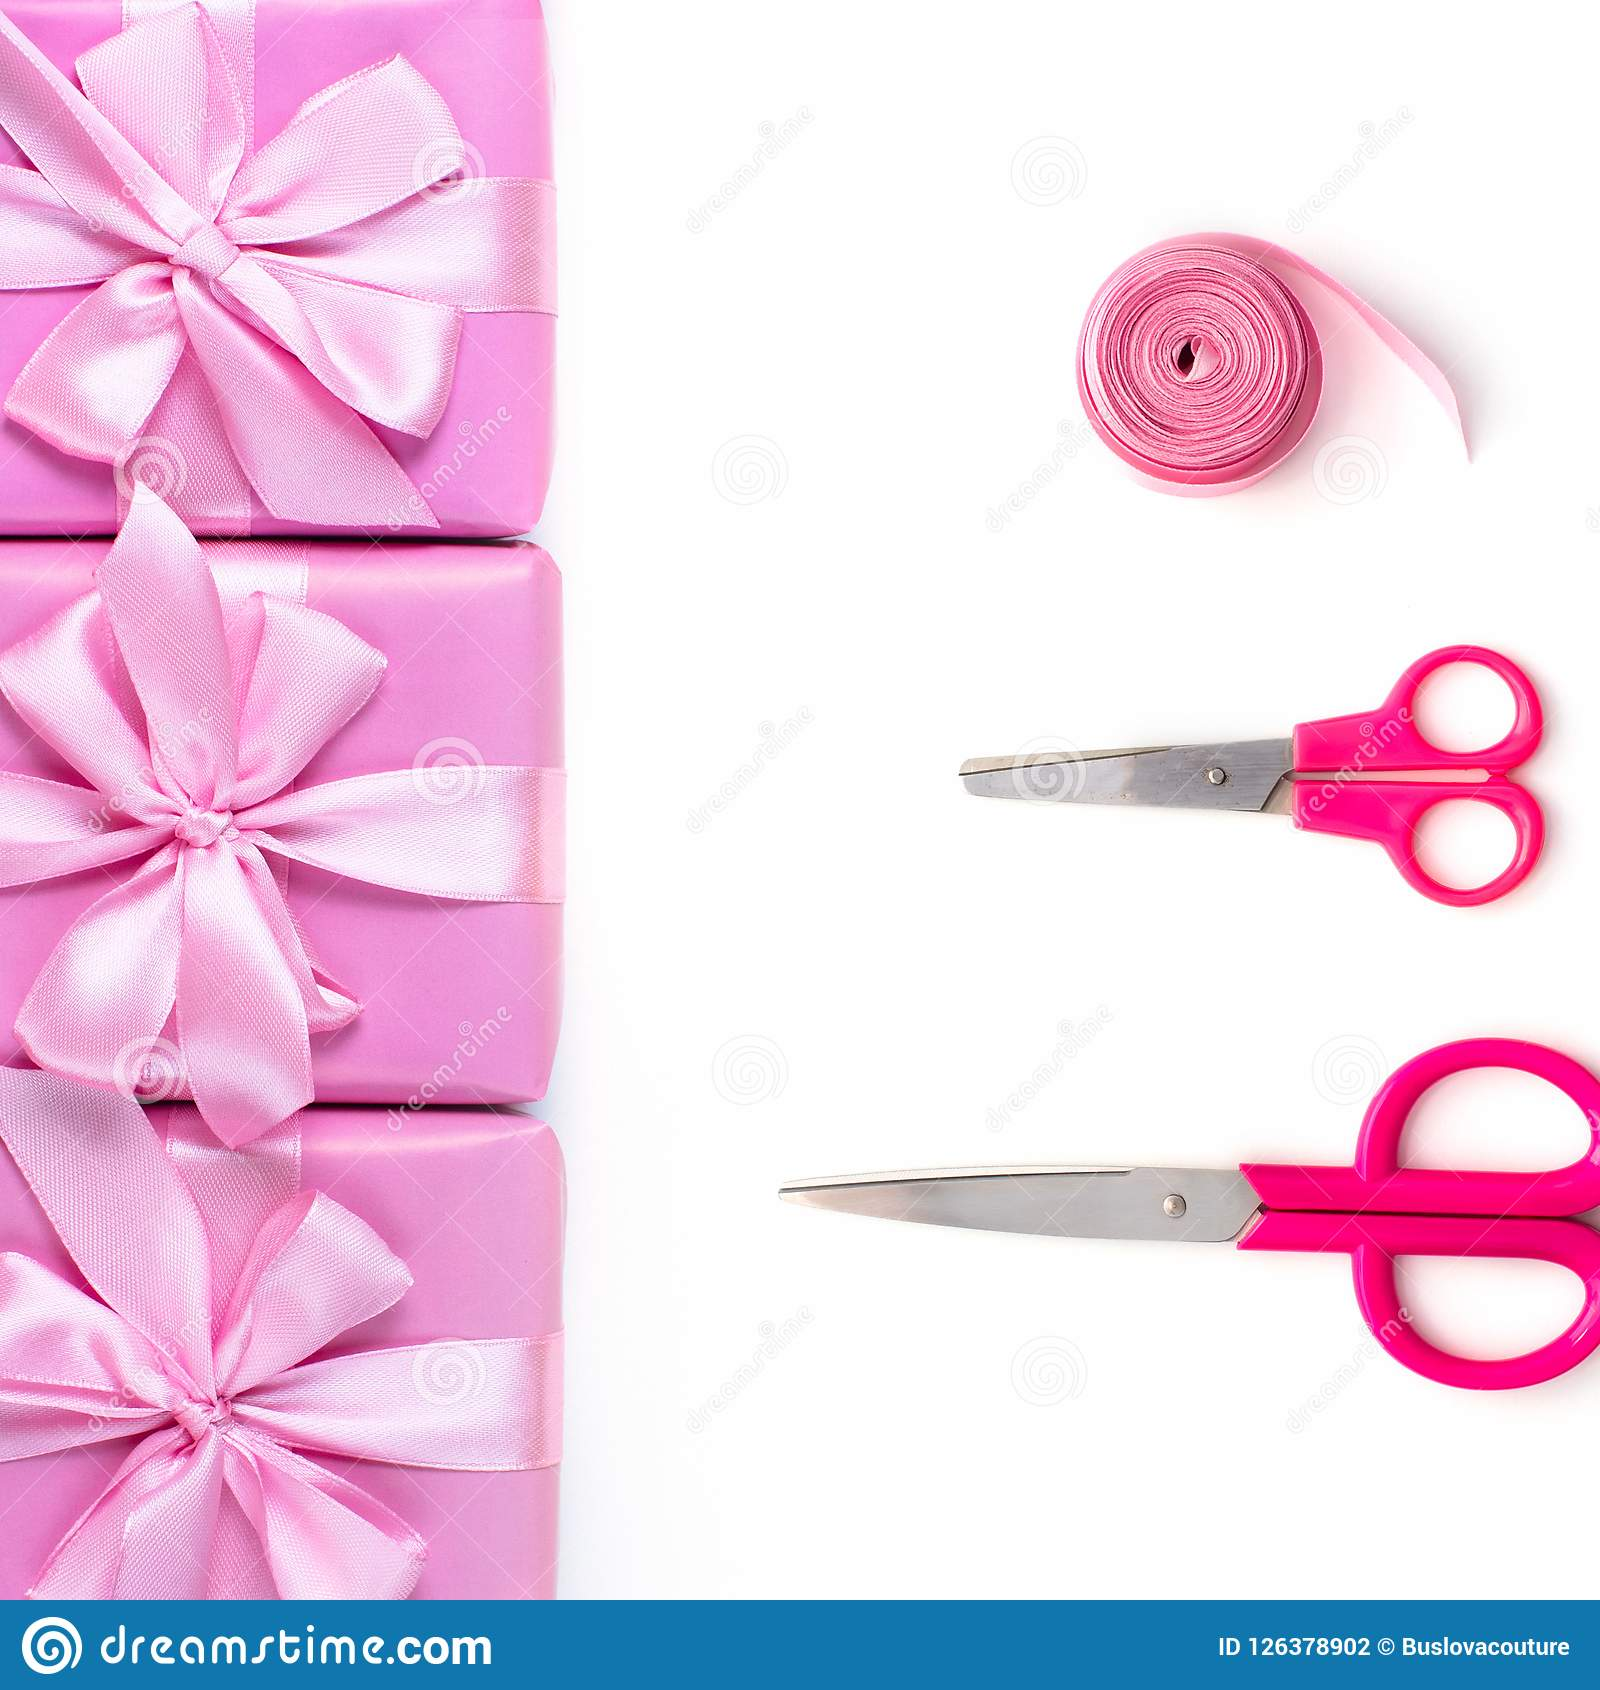 Rows of boxes six with gifts decoration ribbon satin bow scissors pink A top view of Flat lay